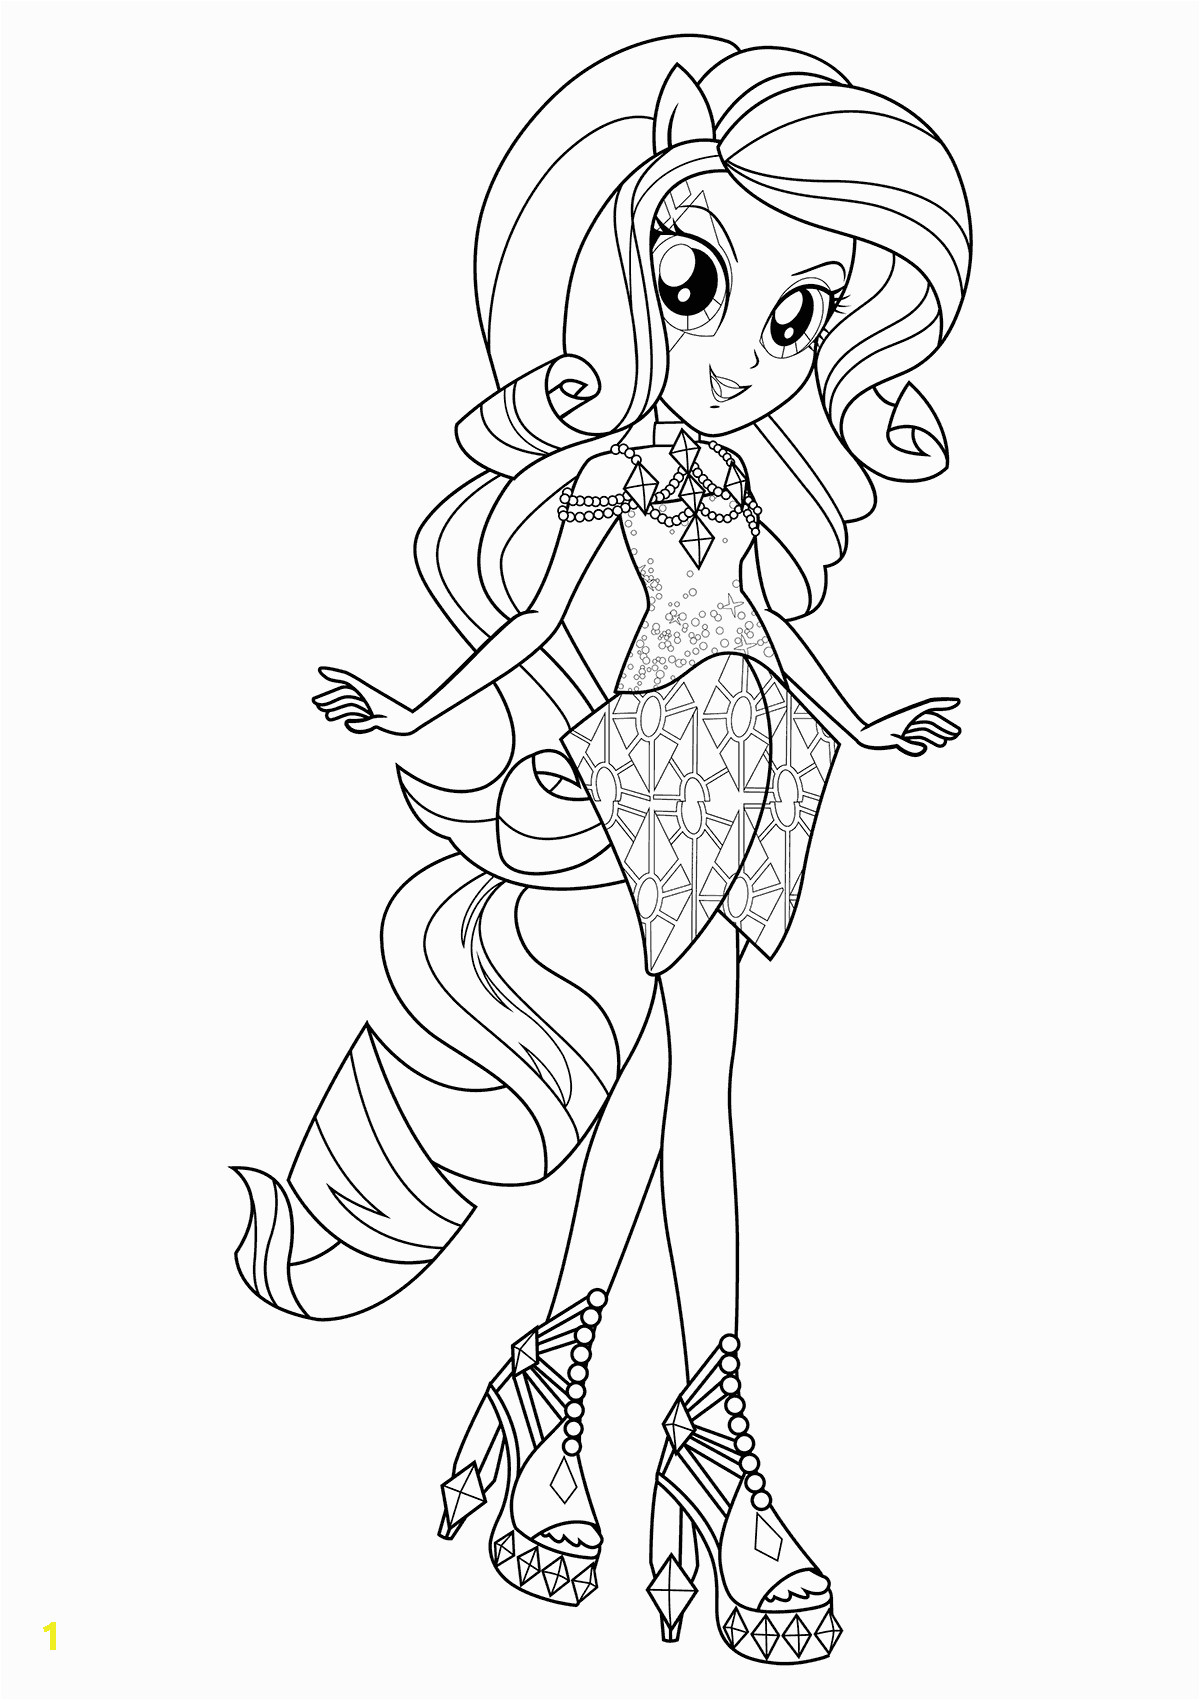 equestria girls coloring pages